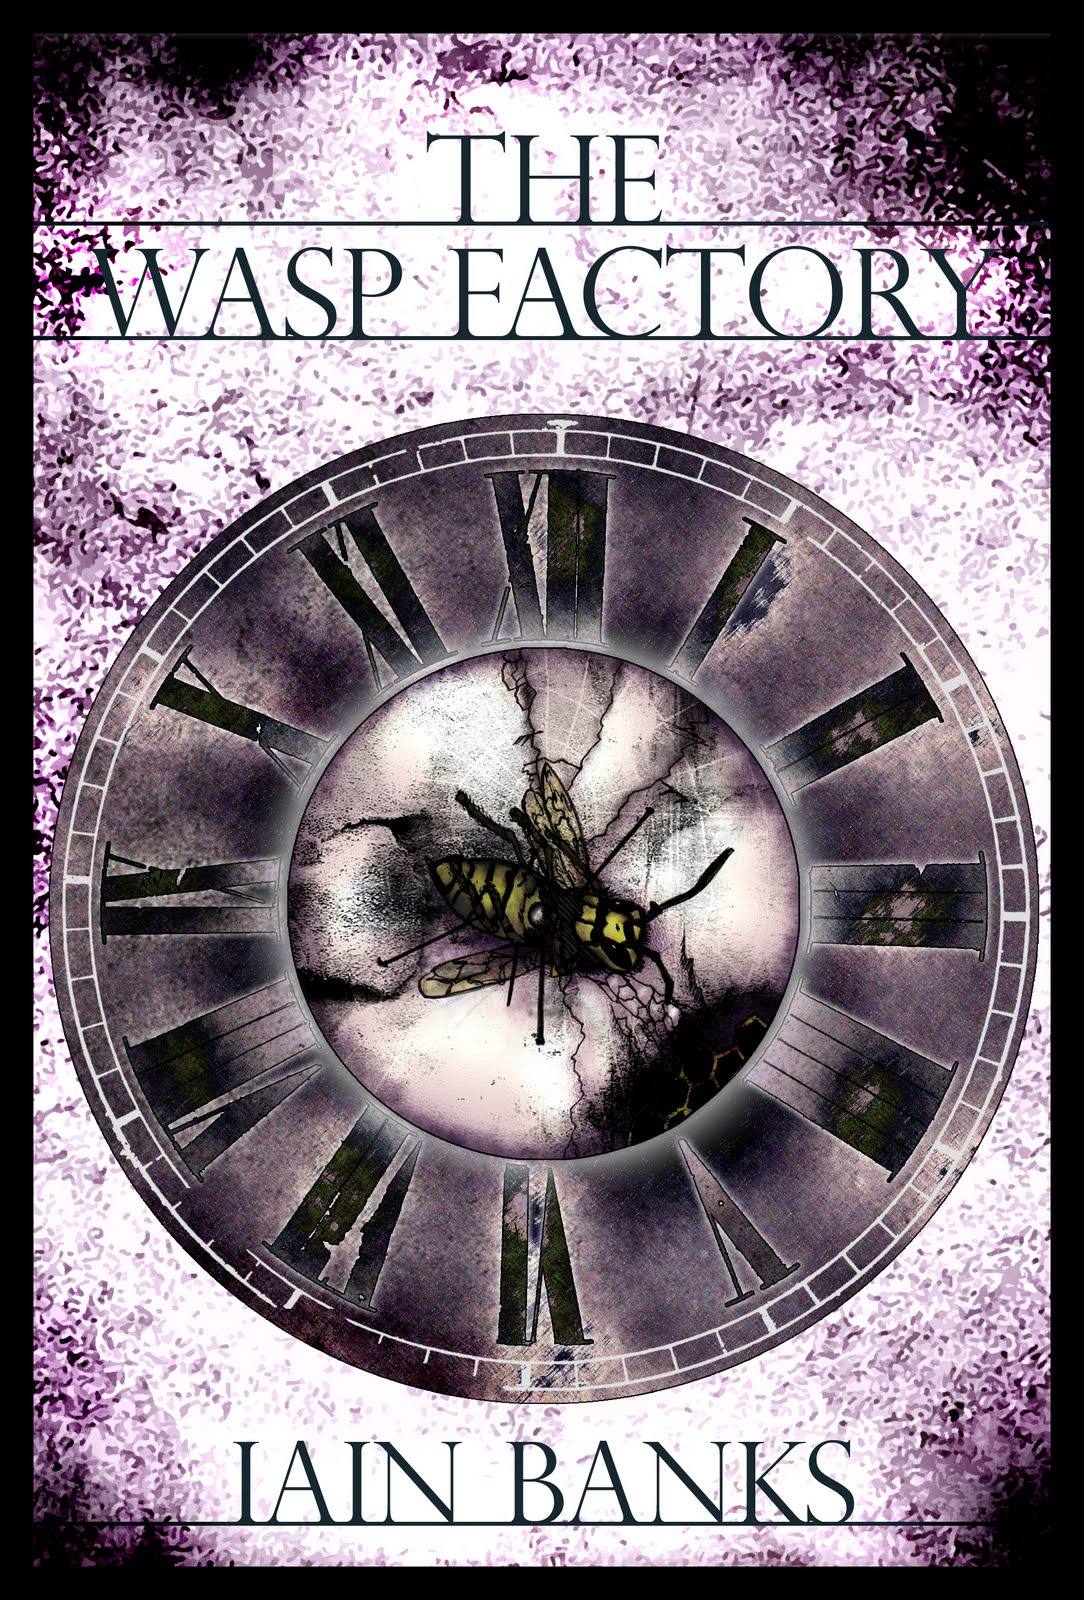 the wasp factory Commentary for the wasp factory by iain banks iain banks key concerns in the wasp factory are gender identification, bank s sceptical attitude to organised.